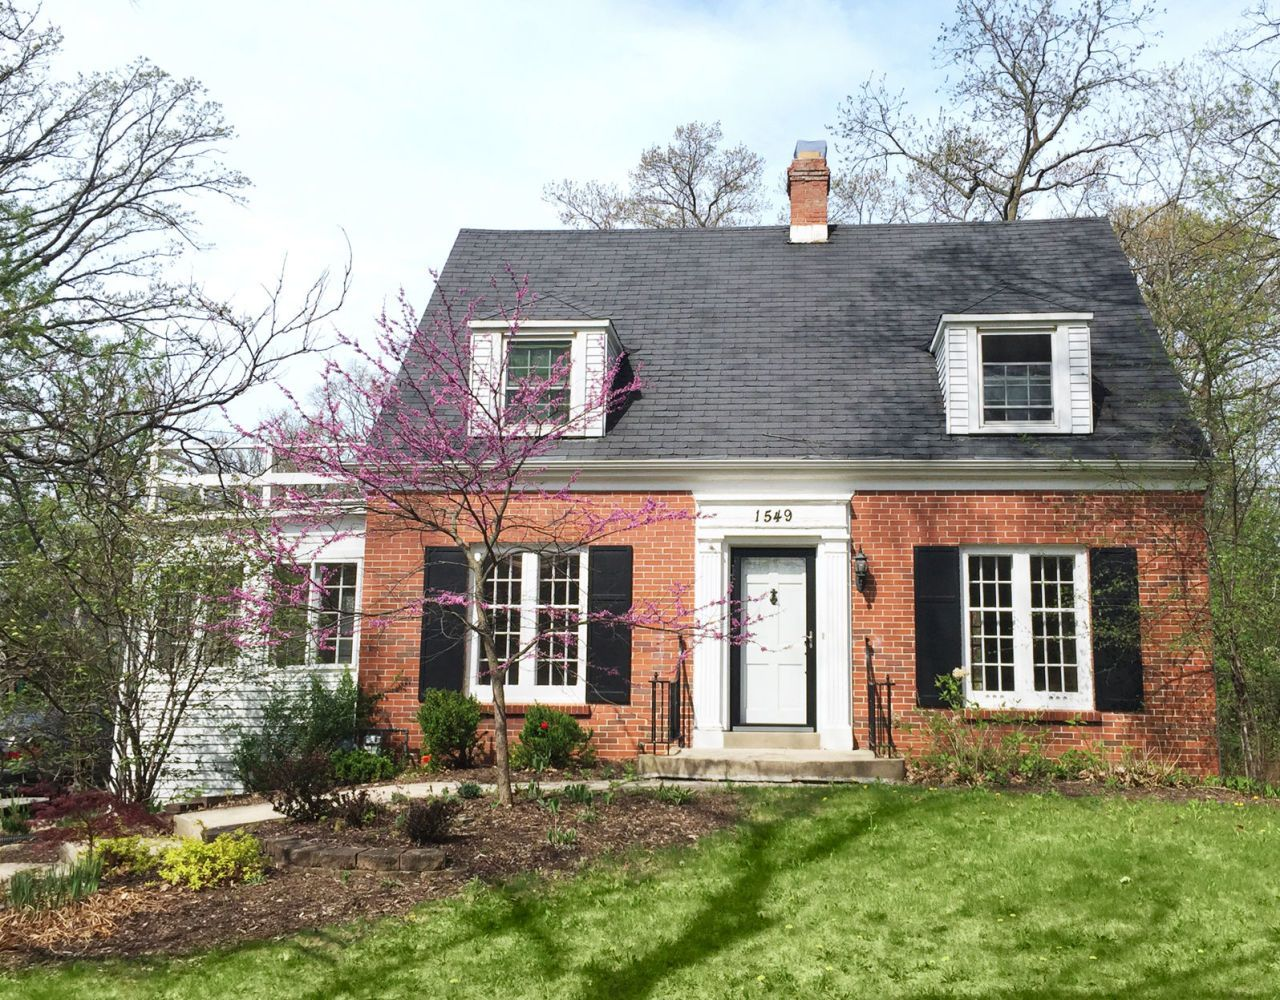 7 of the most charming cape cod style homes across the country rh pinterest com Victorian Style Homes Craftsman- style Home